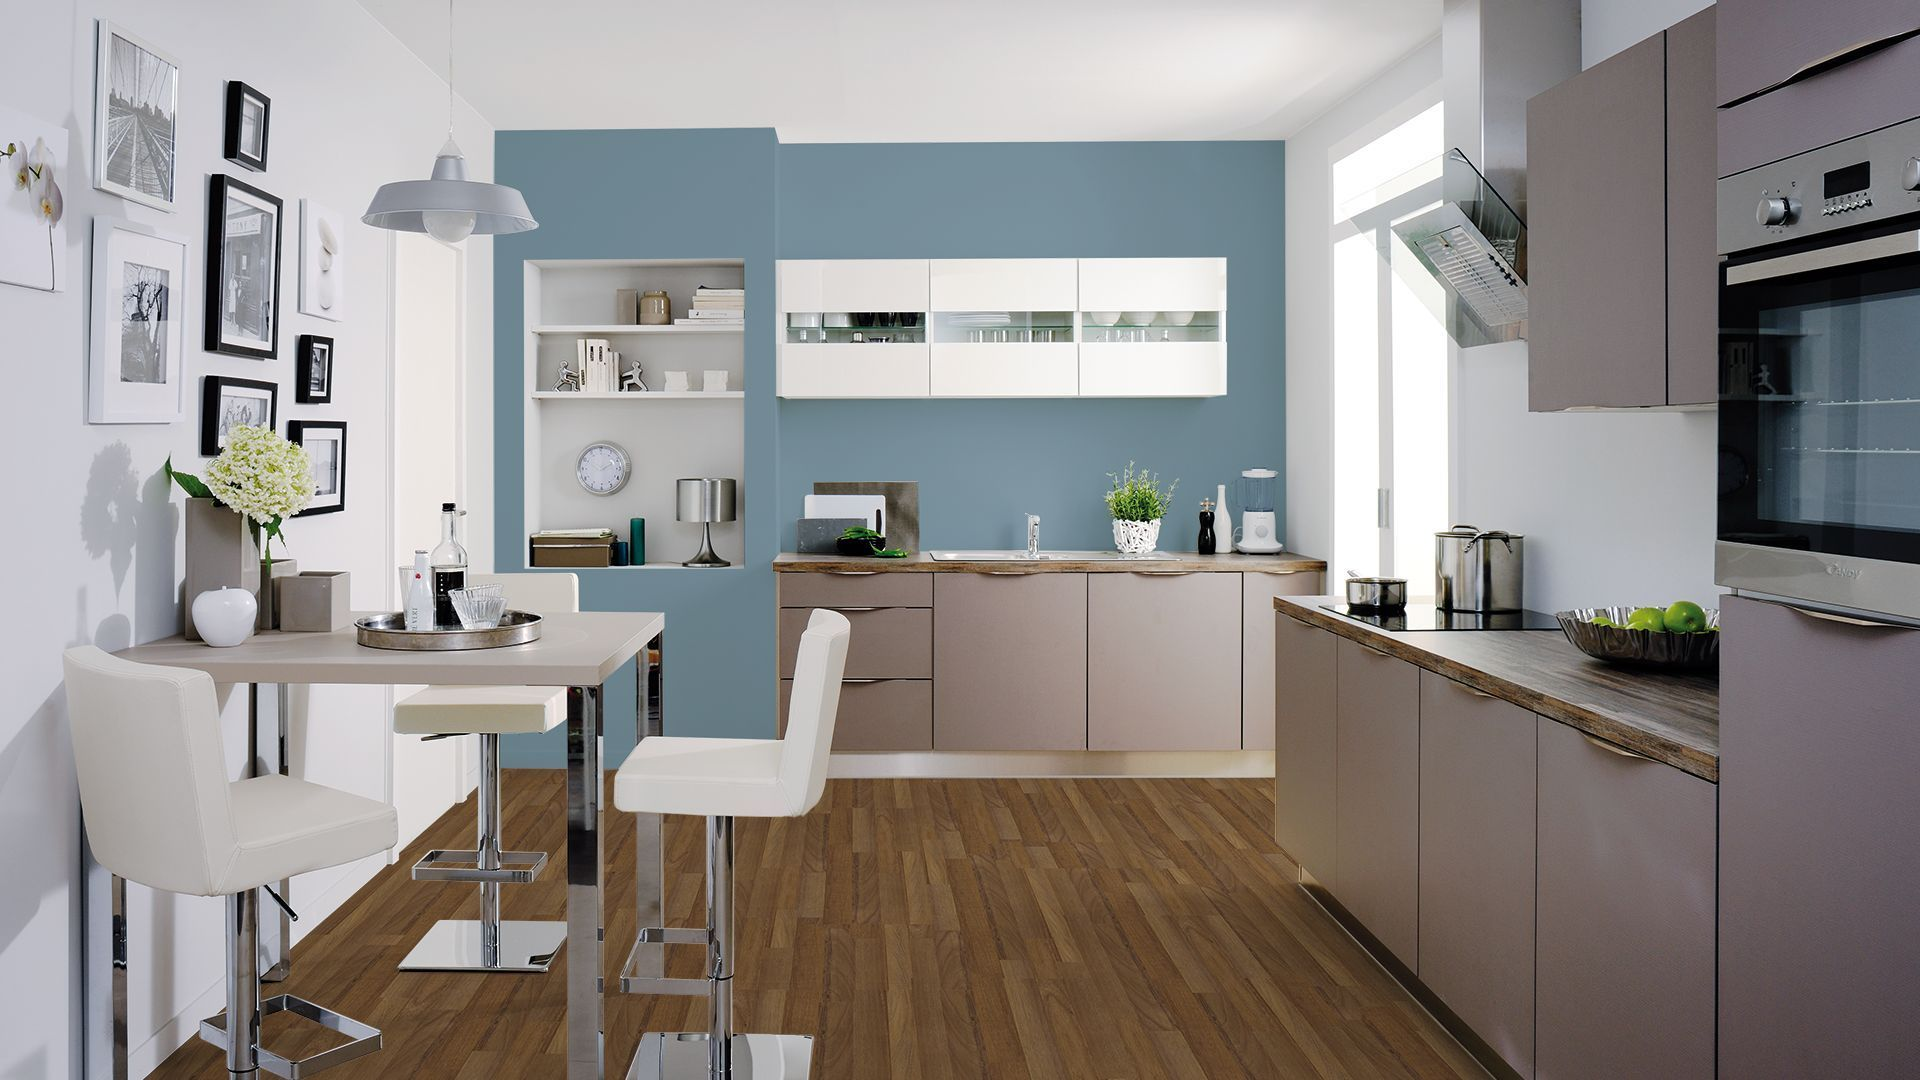 bleu et taupe | carrelage in 2019 | Little kitchen, Cuisine, Taupe